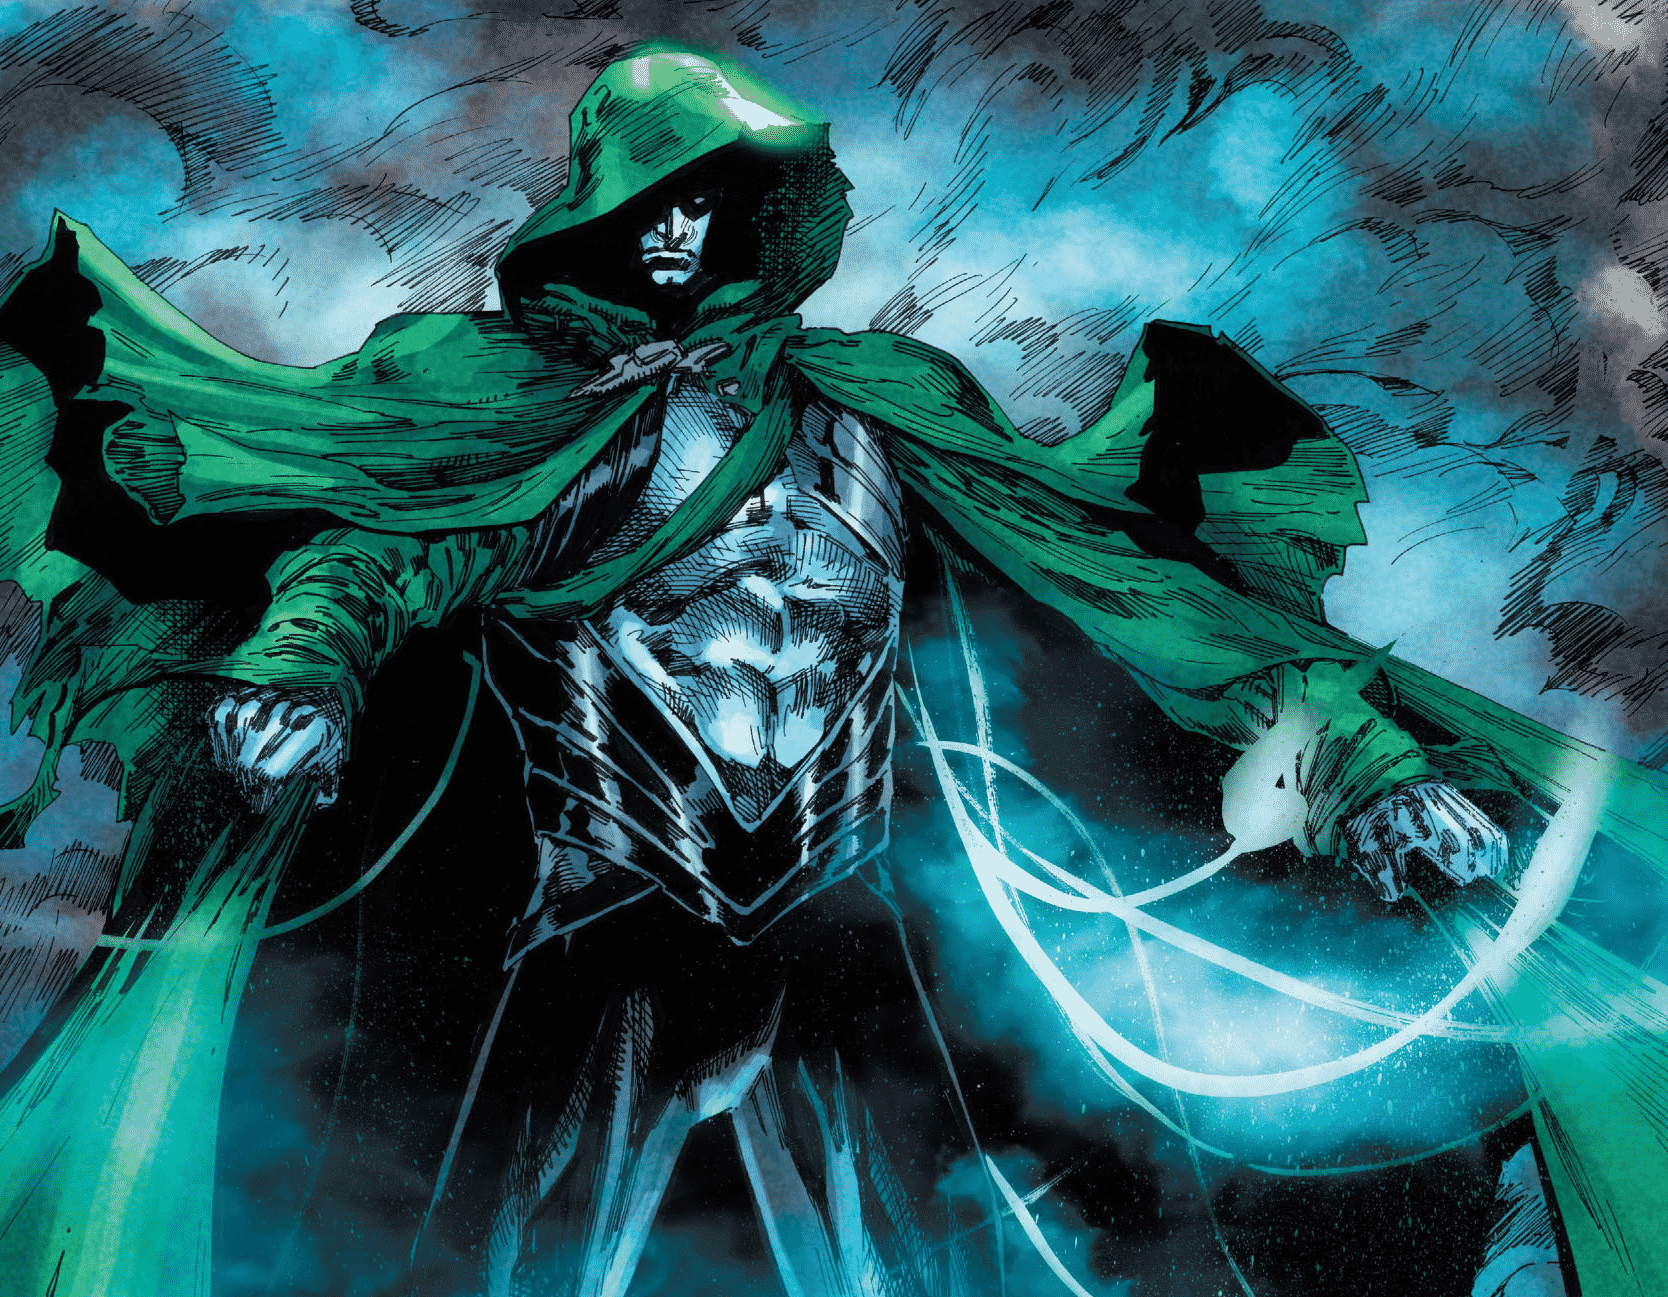 Jim Corrigan is going to hand over The Spectre mantle to the Green Arrow, Oliver Queen. Pic courtesy: ign.com